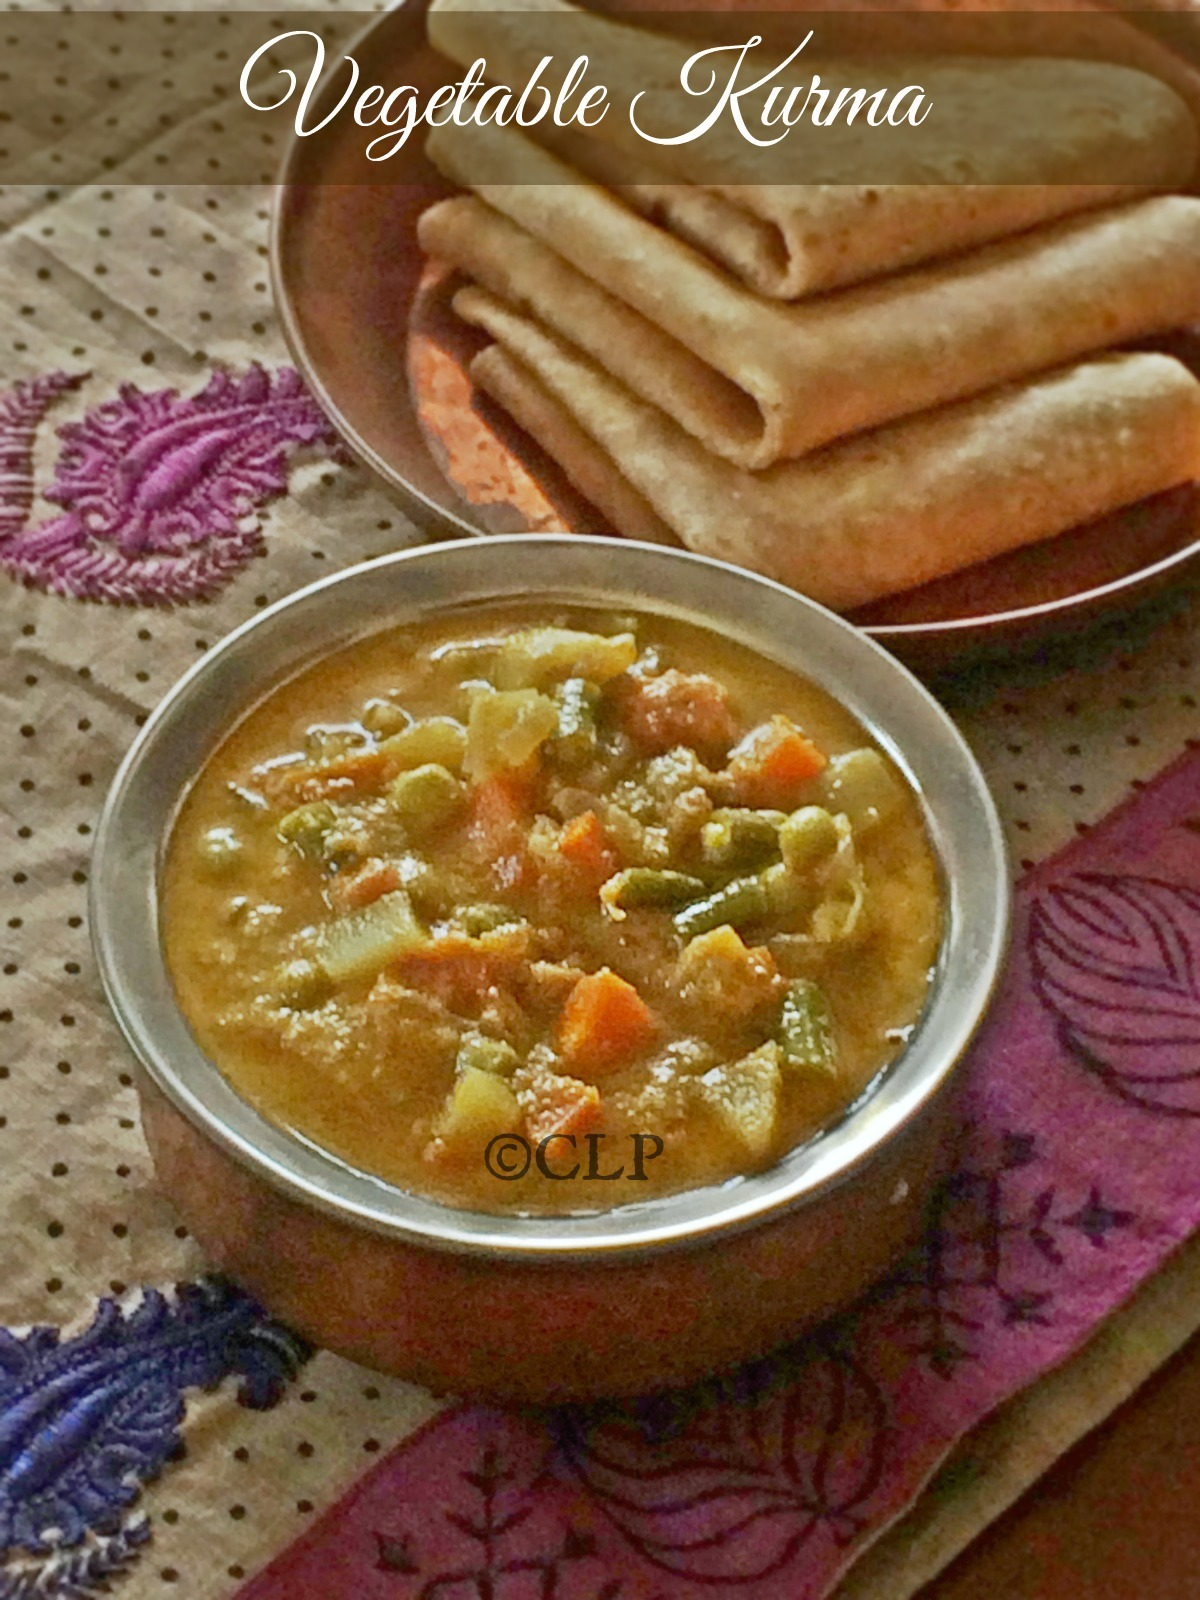 Mixed Vegetable Kurma | Hotel Style Chappati Kurma | South Indian Vegetable Kurma